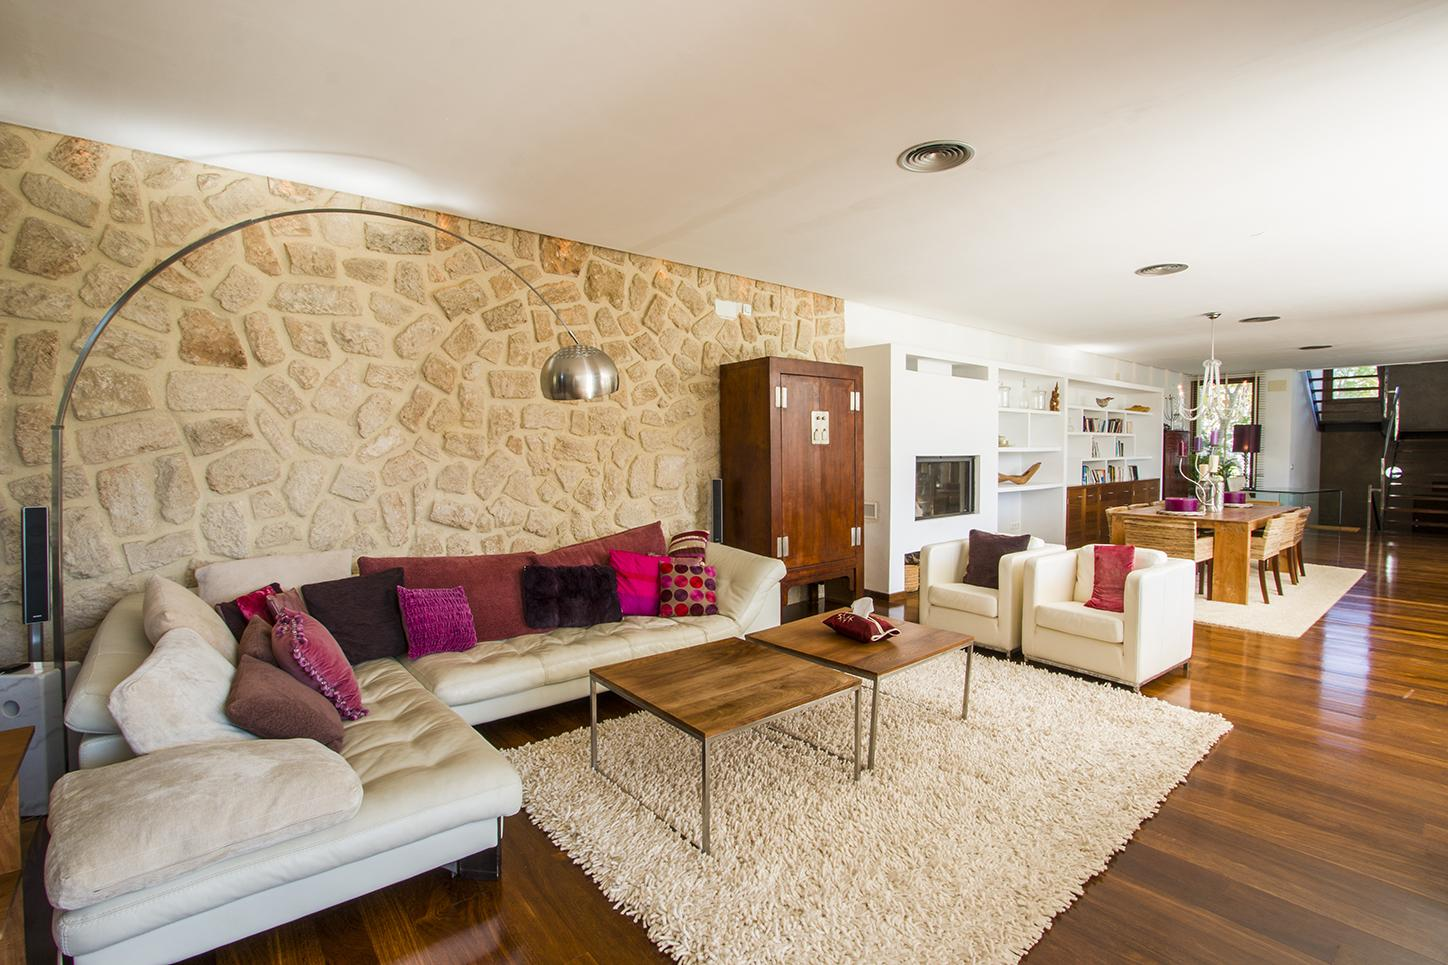 77345904 3017559 foto 501392 - A beautiful house full of light and colour in Jávea (Costa Blanca)